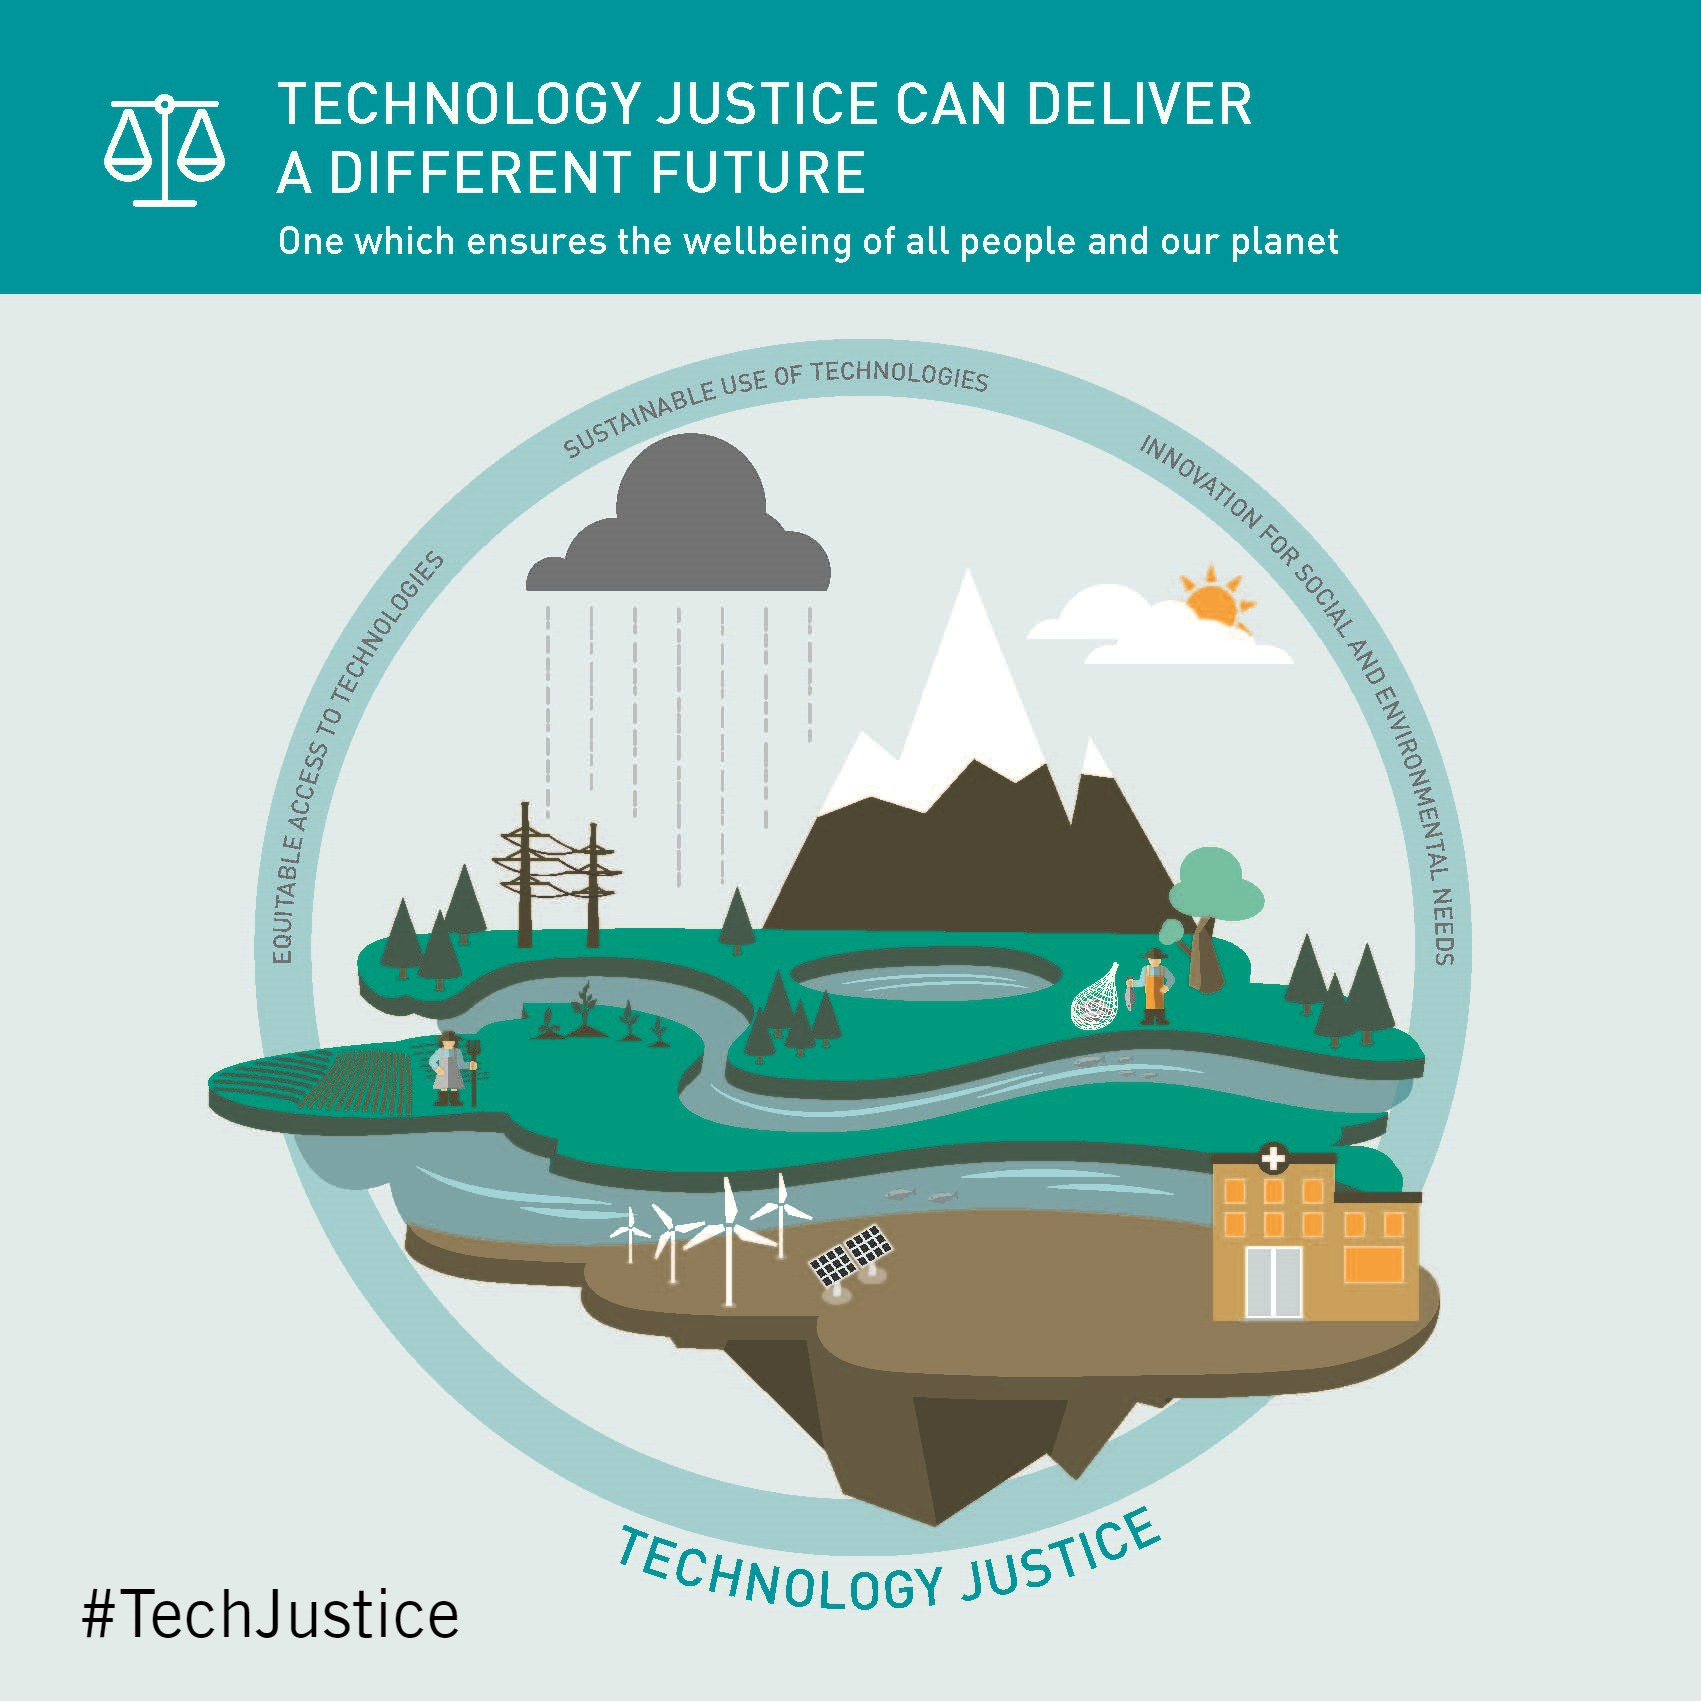 Technology Justice can deliver a different future